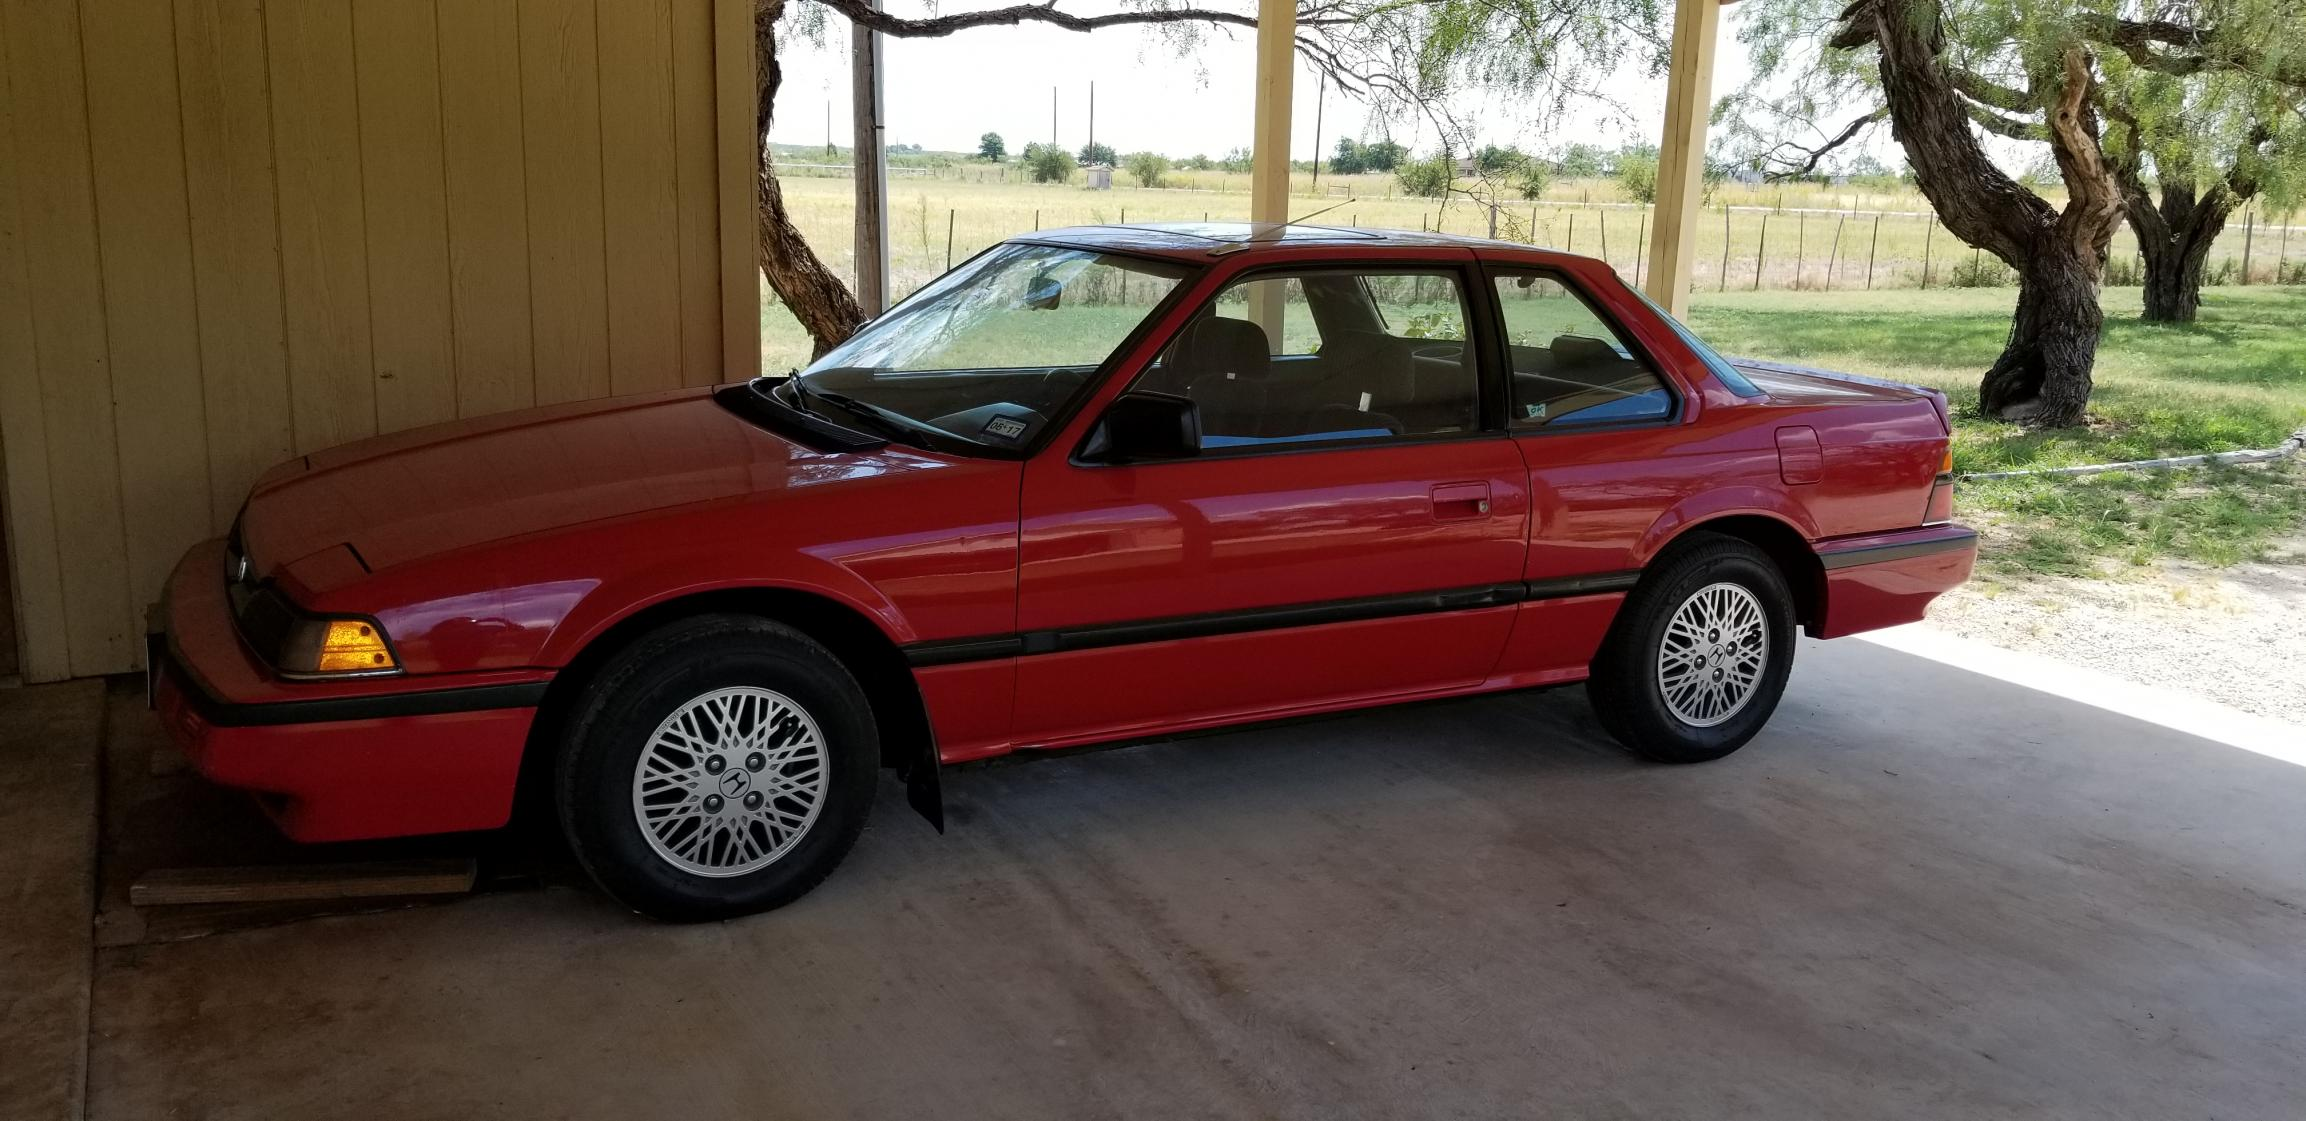 86 Prelude 2.0 Si for sale - 189k miles for 00-prelude.jpg